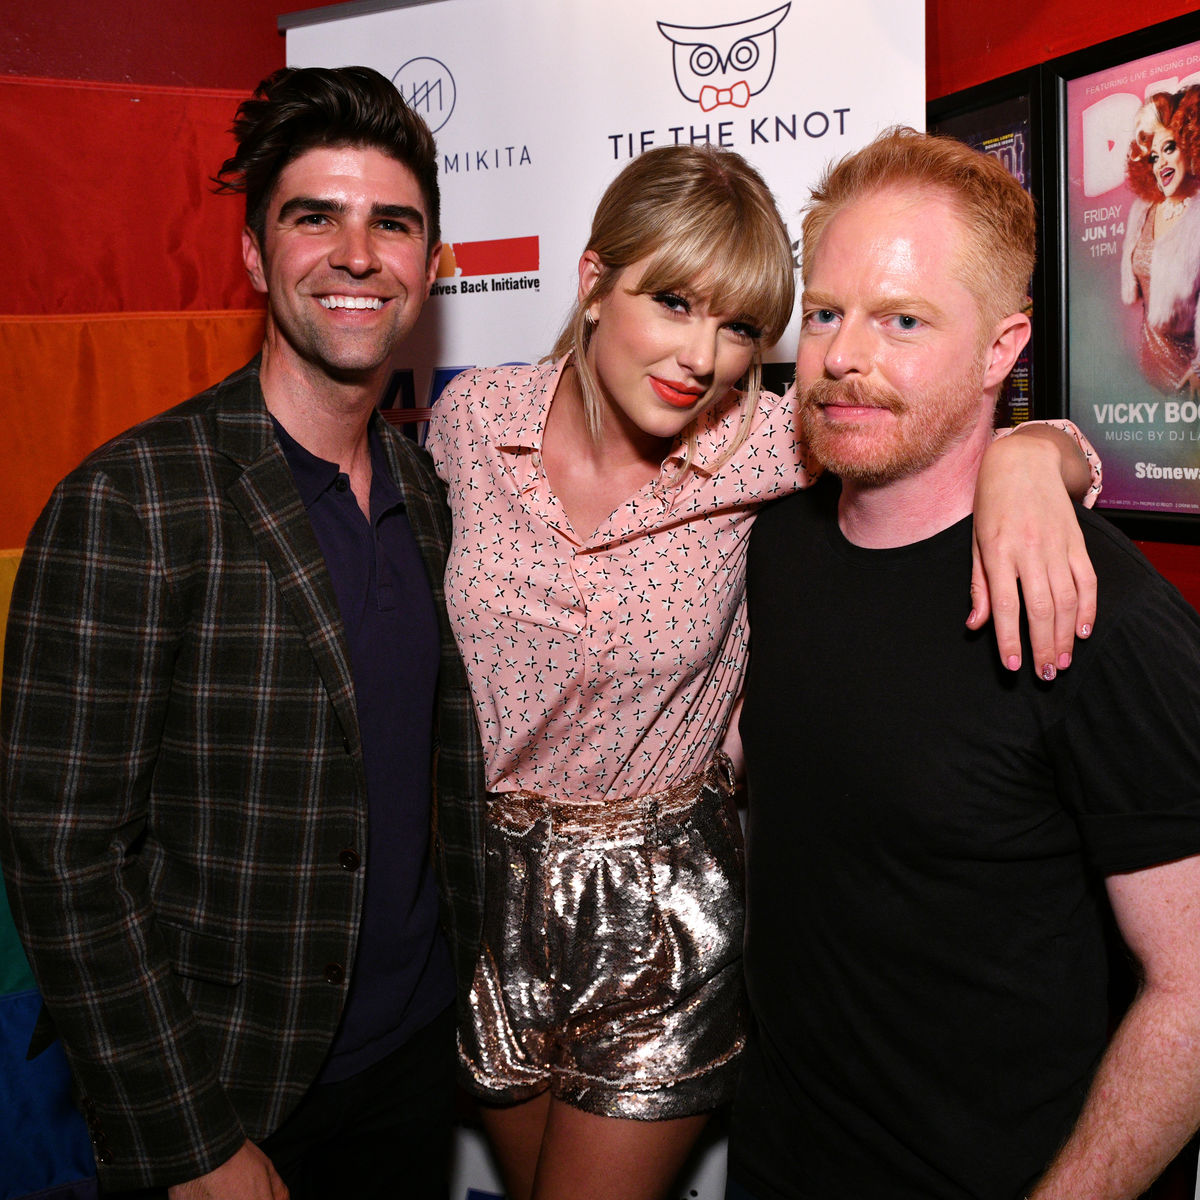 NEW YORK, NEW YORK - JUNE 14: (L-R) Justin Mikita, Taylor Swift, and Jesse Tyler Ferguson attend AEG and Stonewall Inns pride celebration commemorating the 50th anniversary of the Stonewall Uprising. AEG has pledged its support to SIGBIs development of an LGBTQ+ anti-bias training standard. #EqualityForAll #BetterAsOne (Photo by Bryan Bedder/Getty Images for AEG)